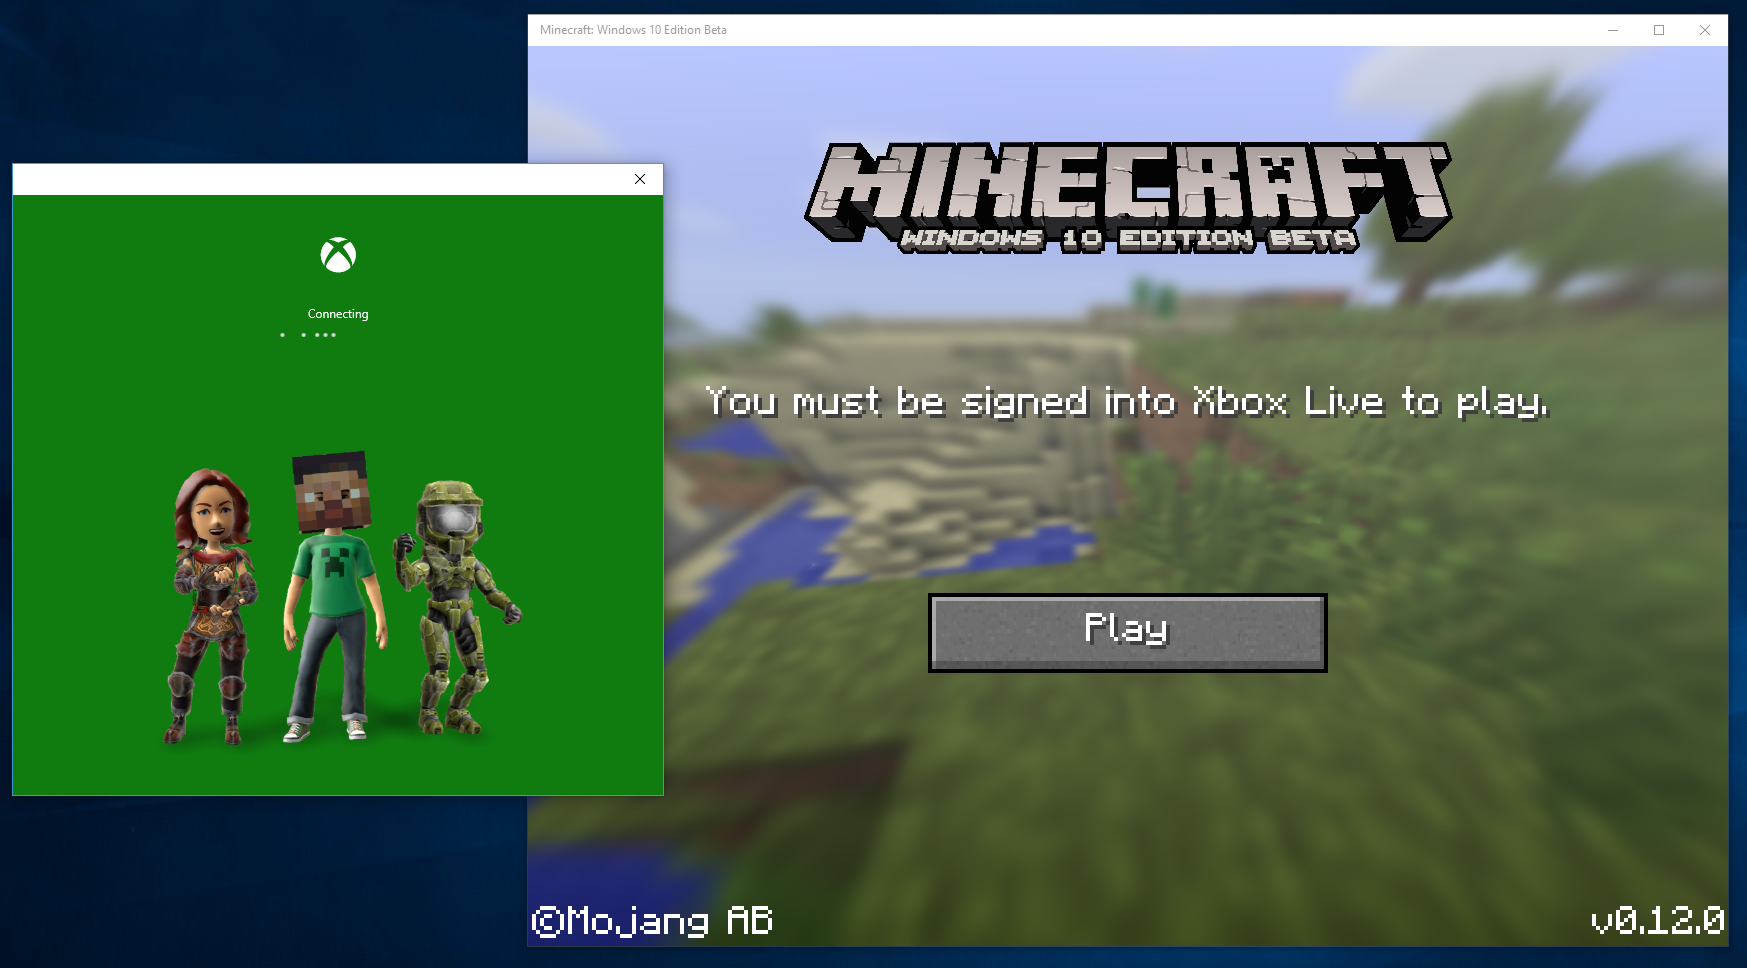 minecraft windows 10 full edition free download